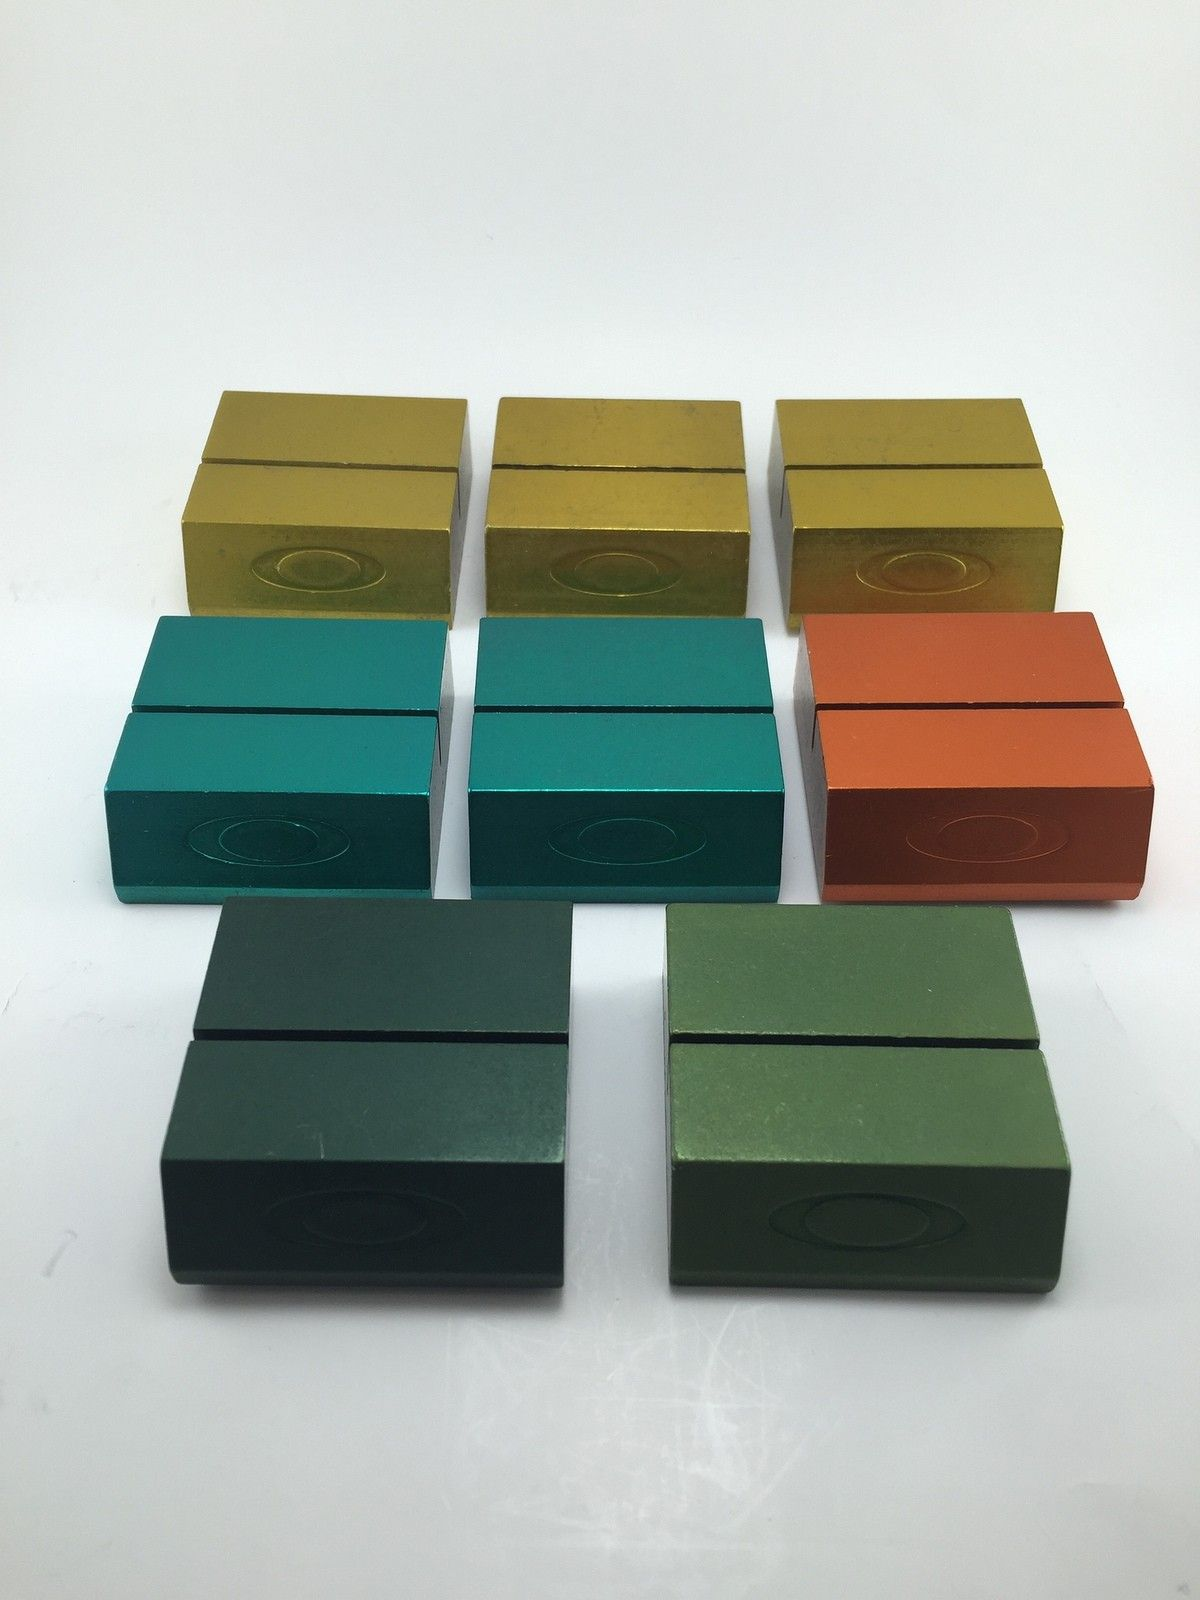 Anodized coin/card/pop holders (set of 8) - 16514906811_e0e3811f0f_k.jpg